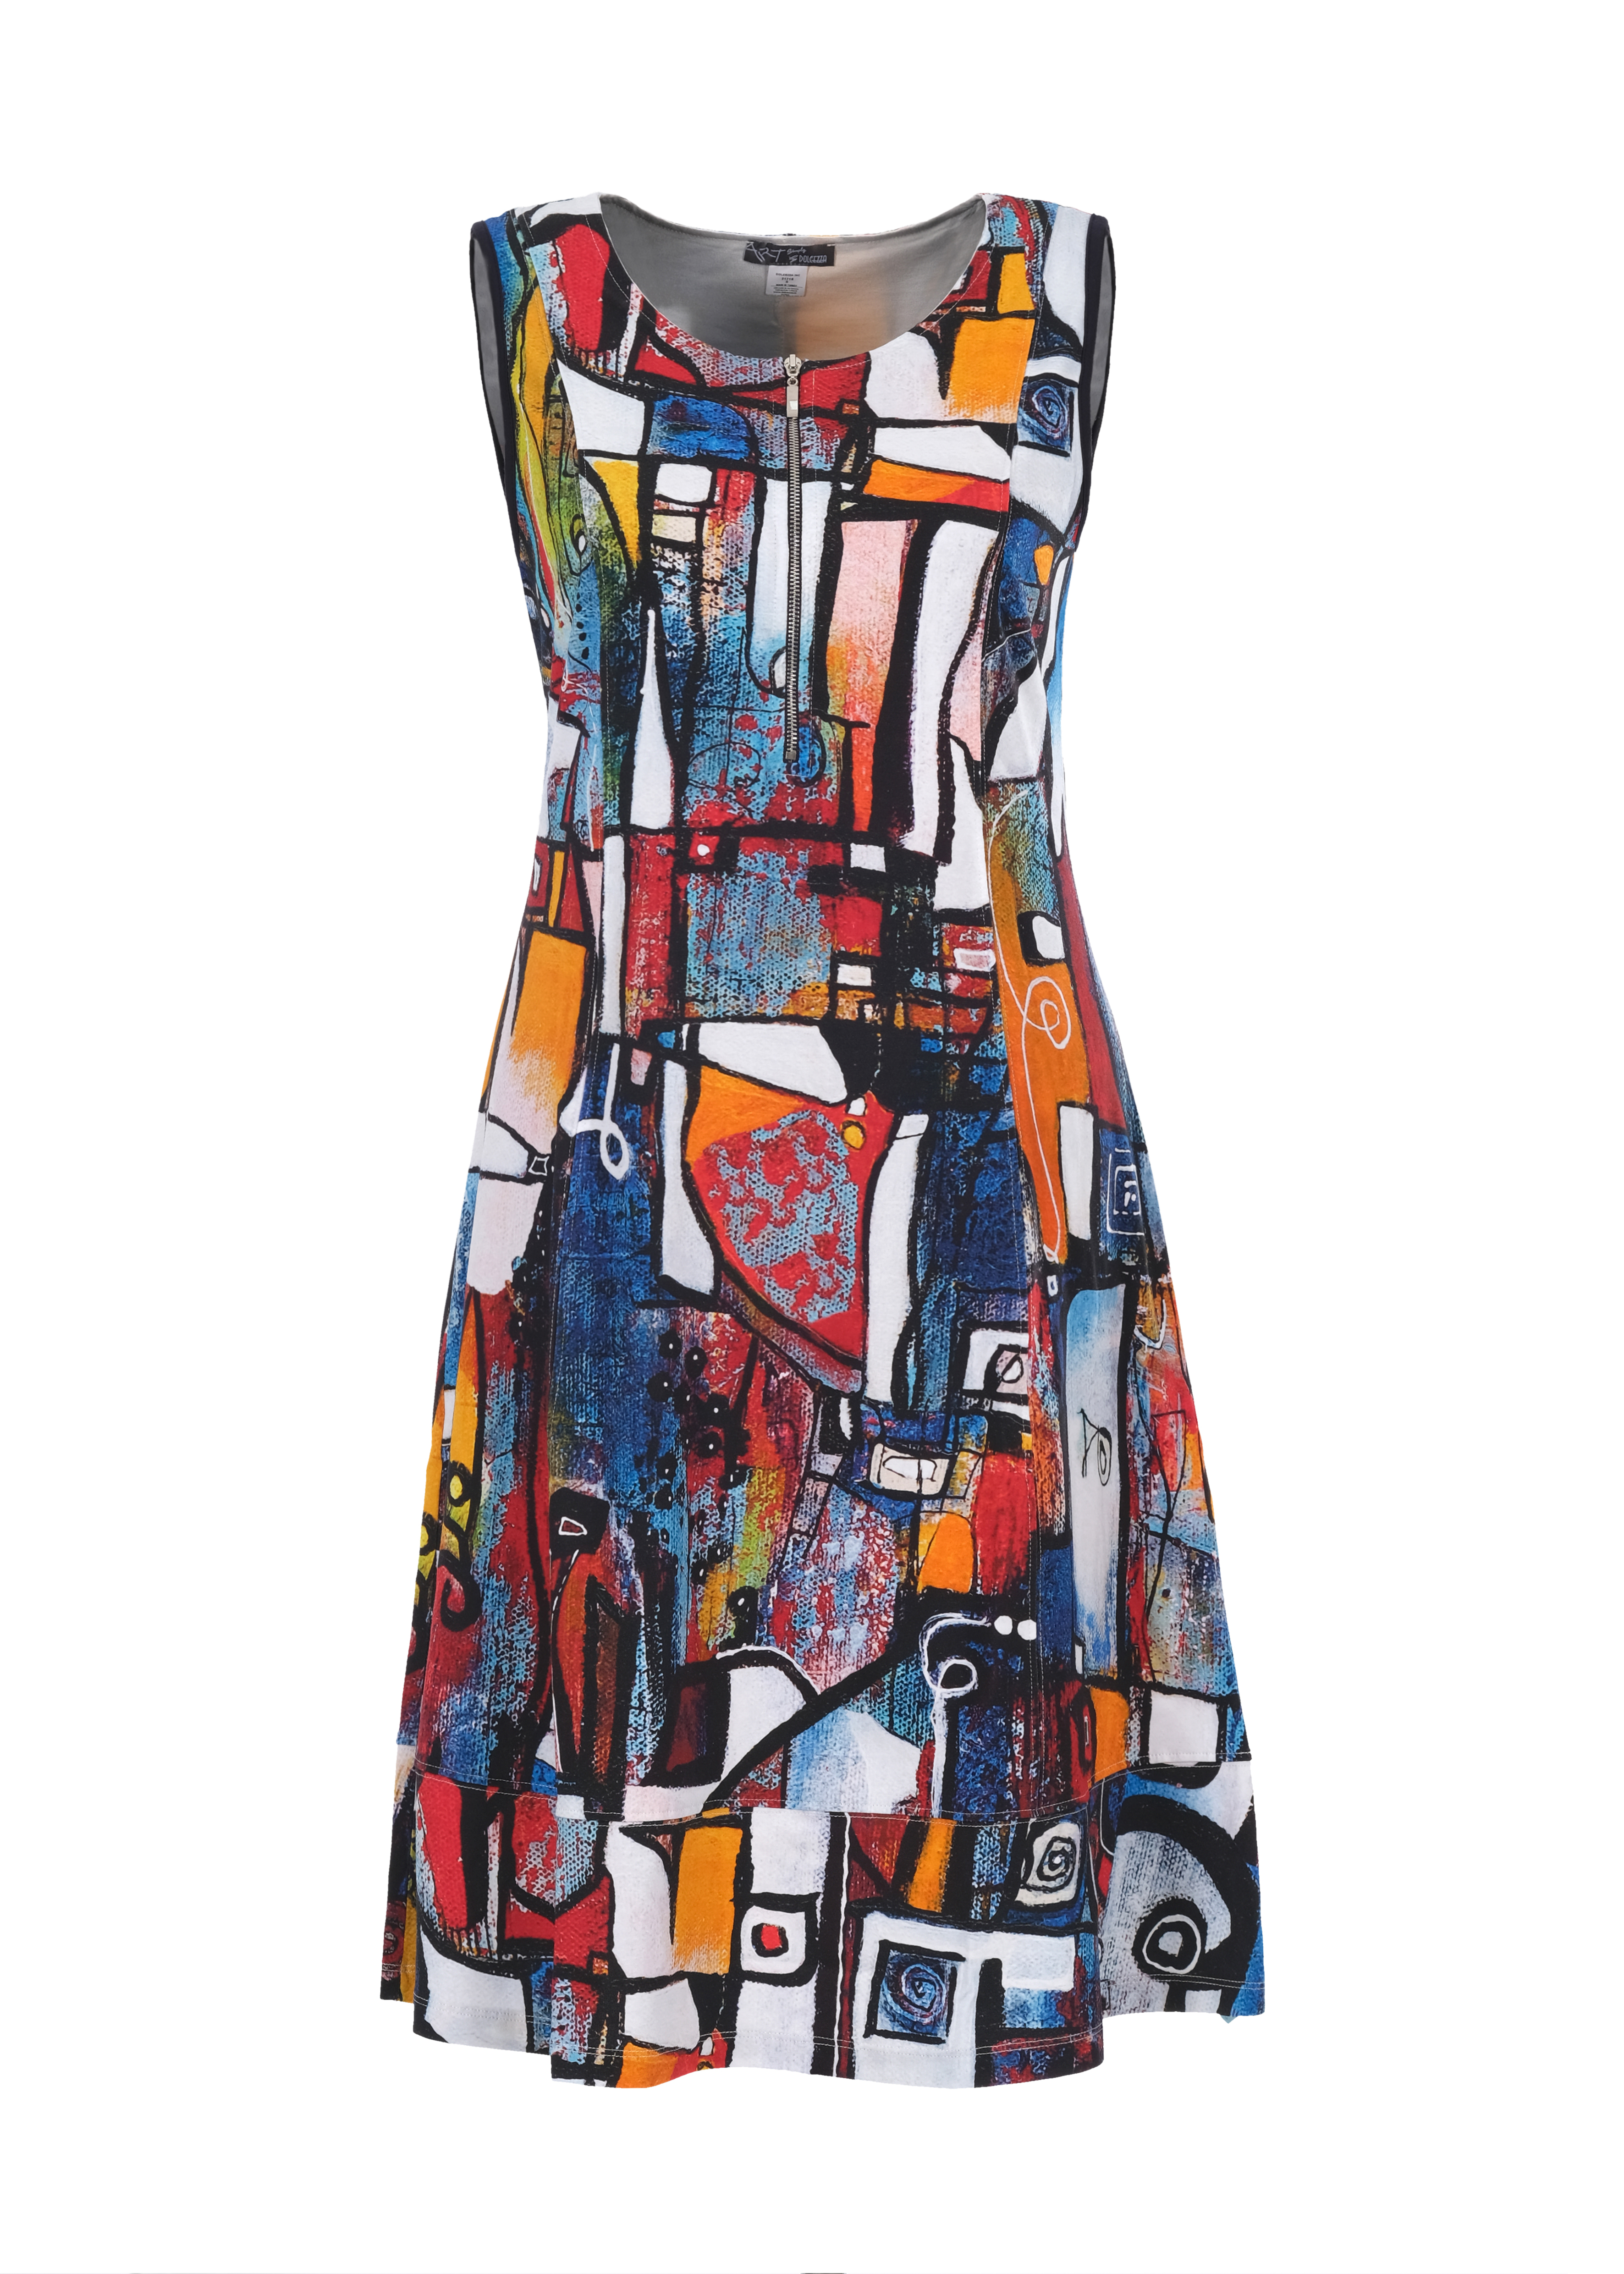 Simply Art Dolcezza: It's Complicated Crazy Cool Abstract Art Dress (1 Left!) Dolcezza_SimplyArt_21716